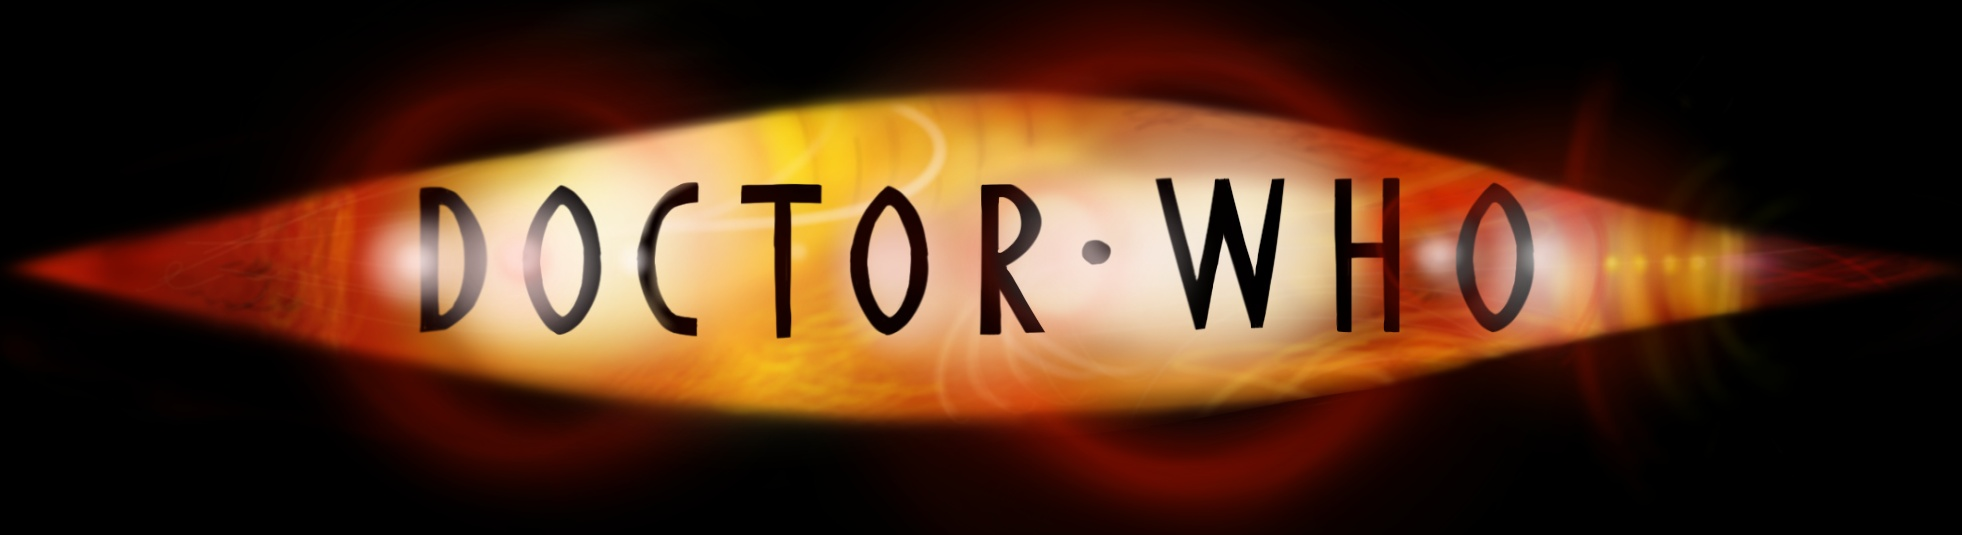 Doctor Who logo - Copyright BBC Worldwide